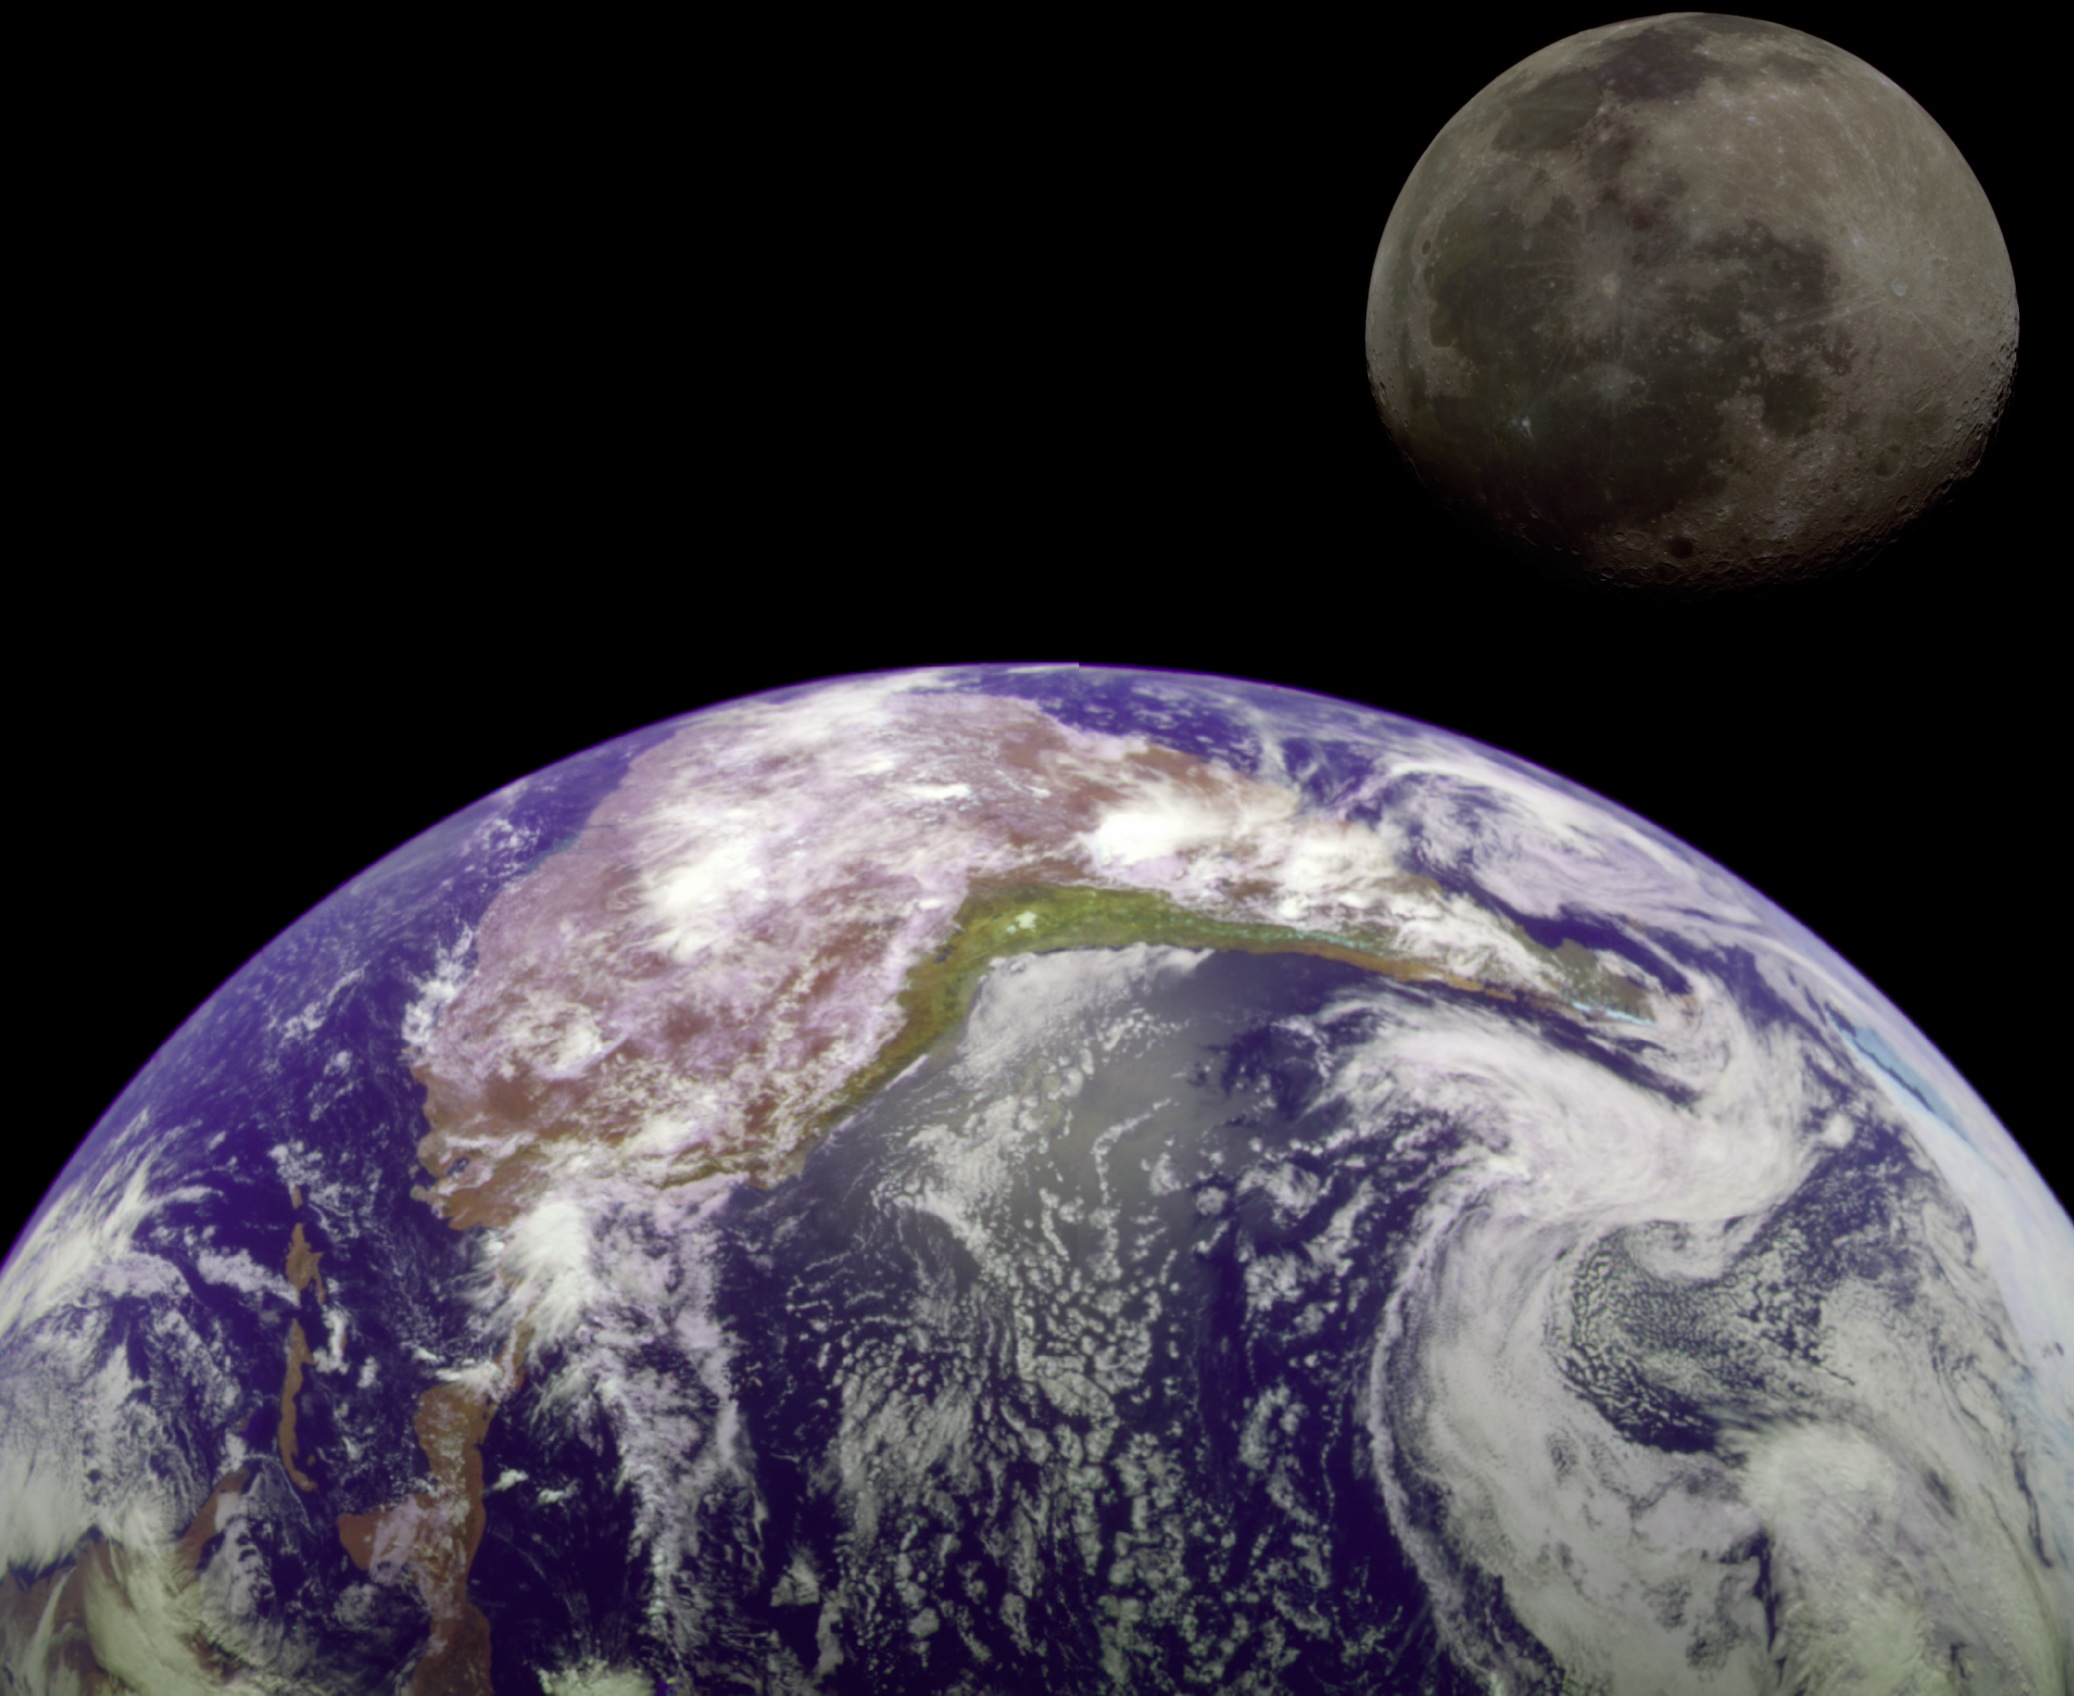 Real Earth Space Moon - Pics about space